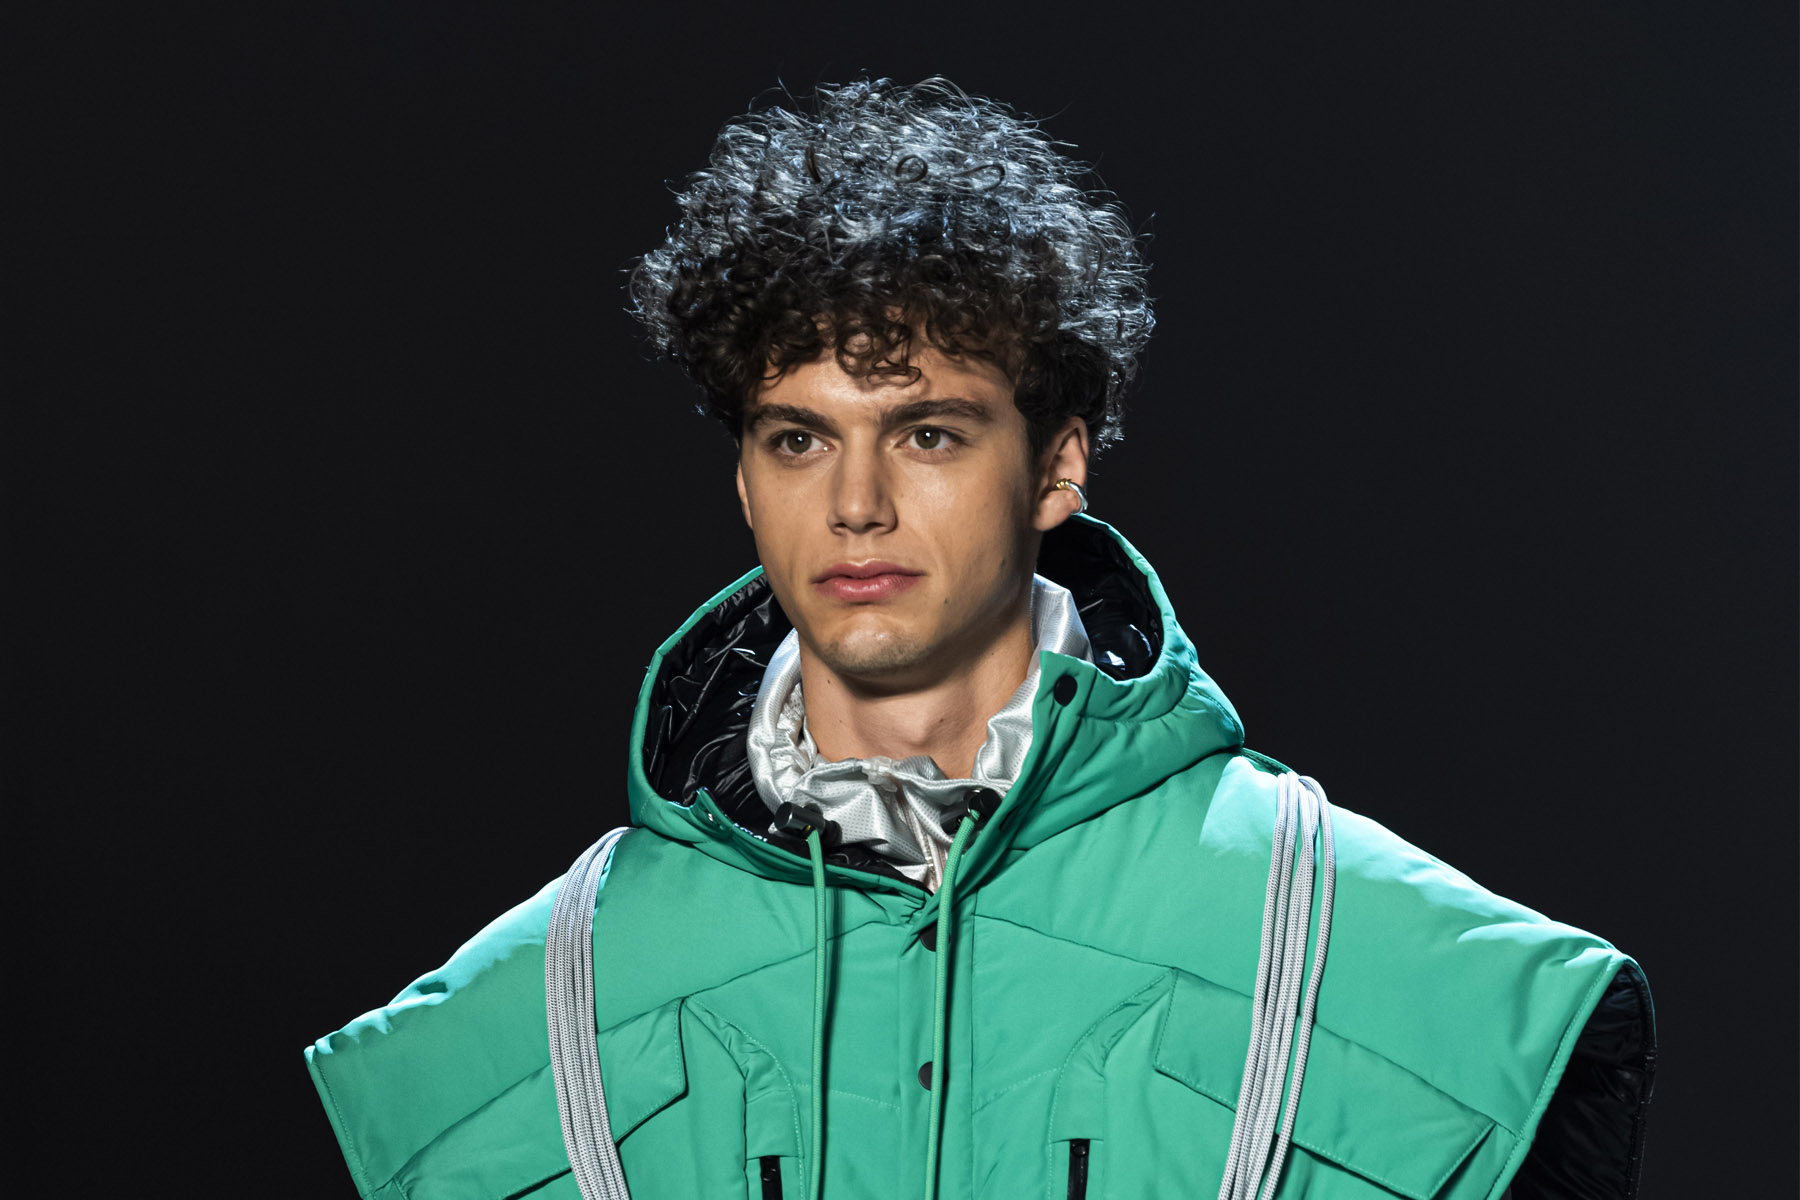 SEVEN CRASH FALL WINTER 2020 MENSWEAR